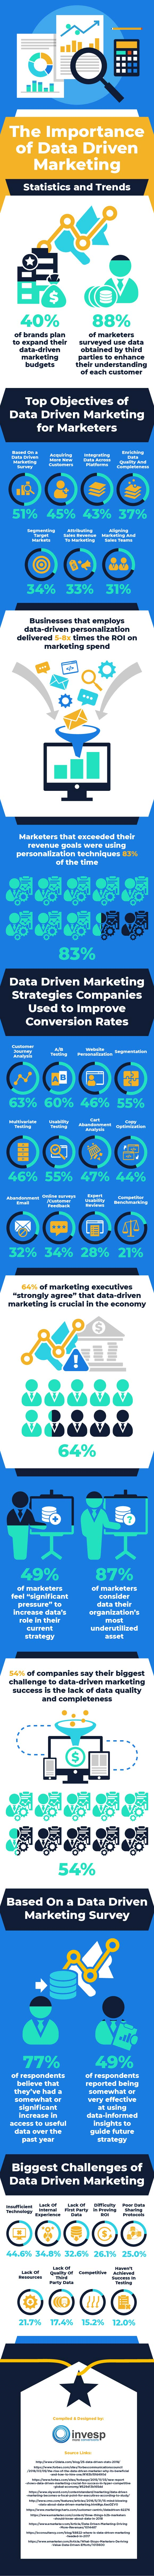 The importance of data driven marketing – Statistics and Trends